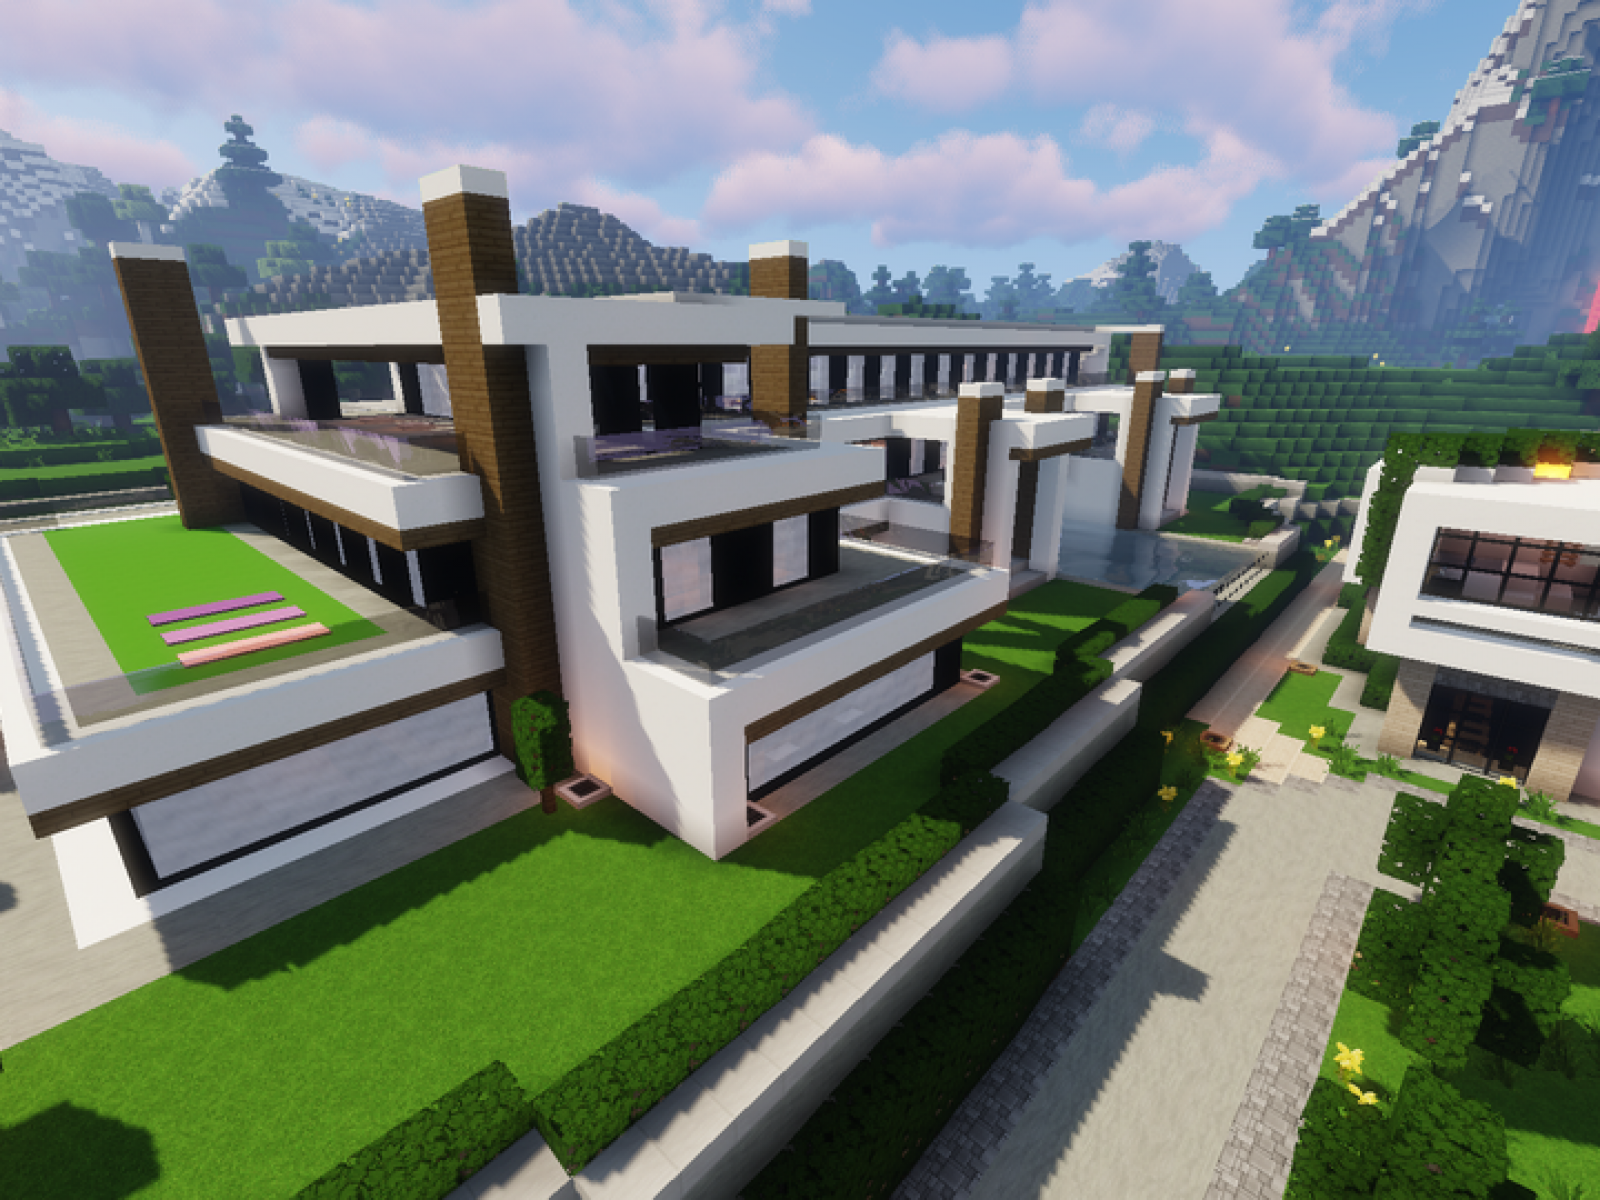 Modern Minecraft Houses: 10 Building Ideas To Stoke Your